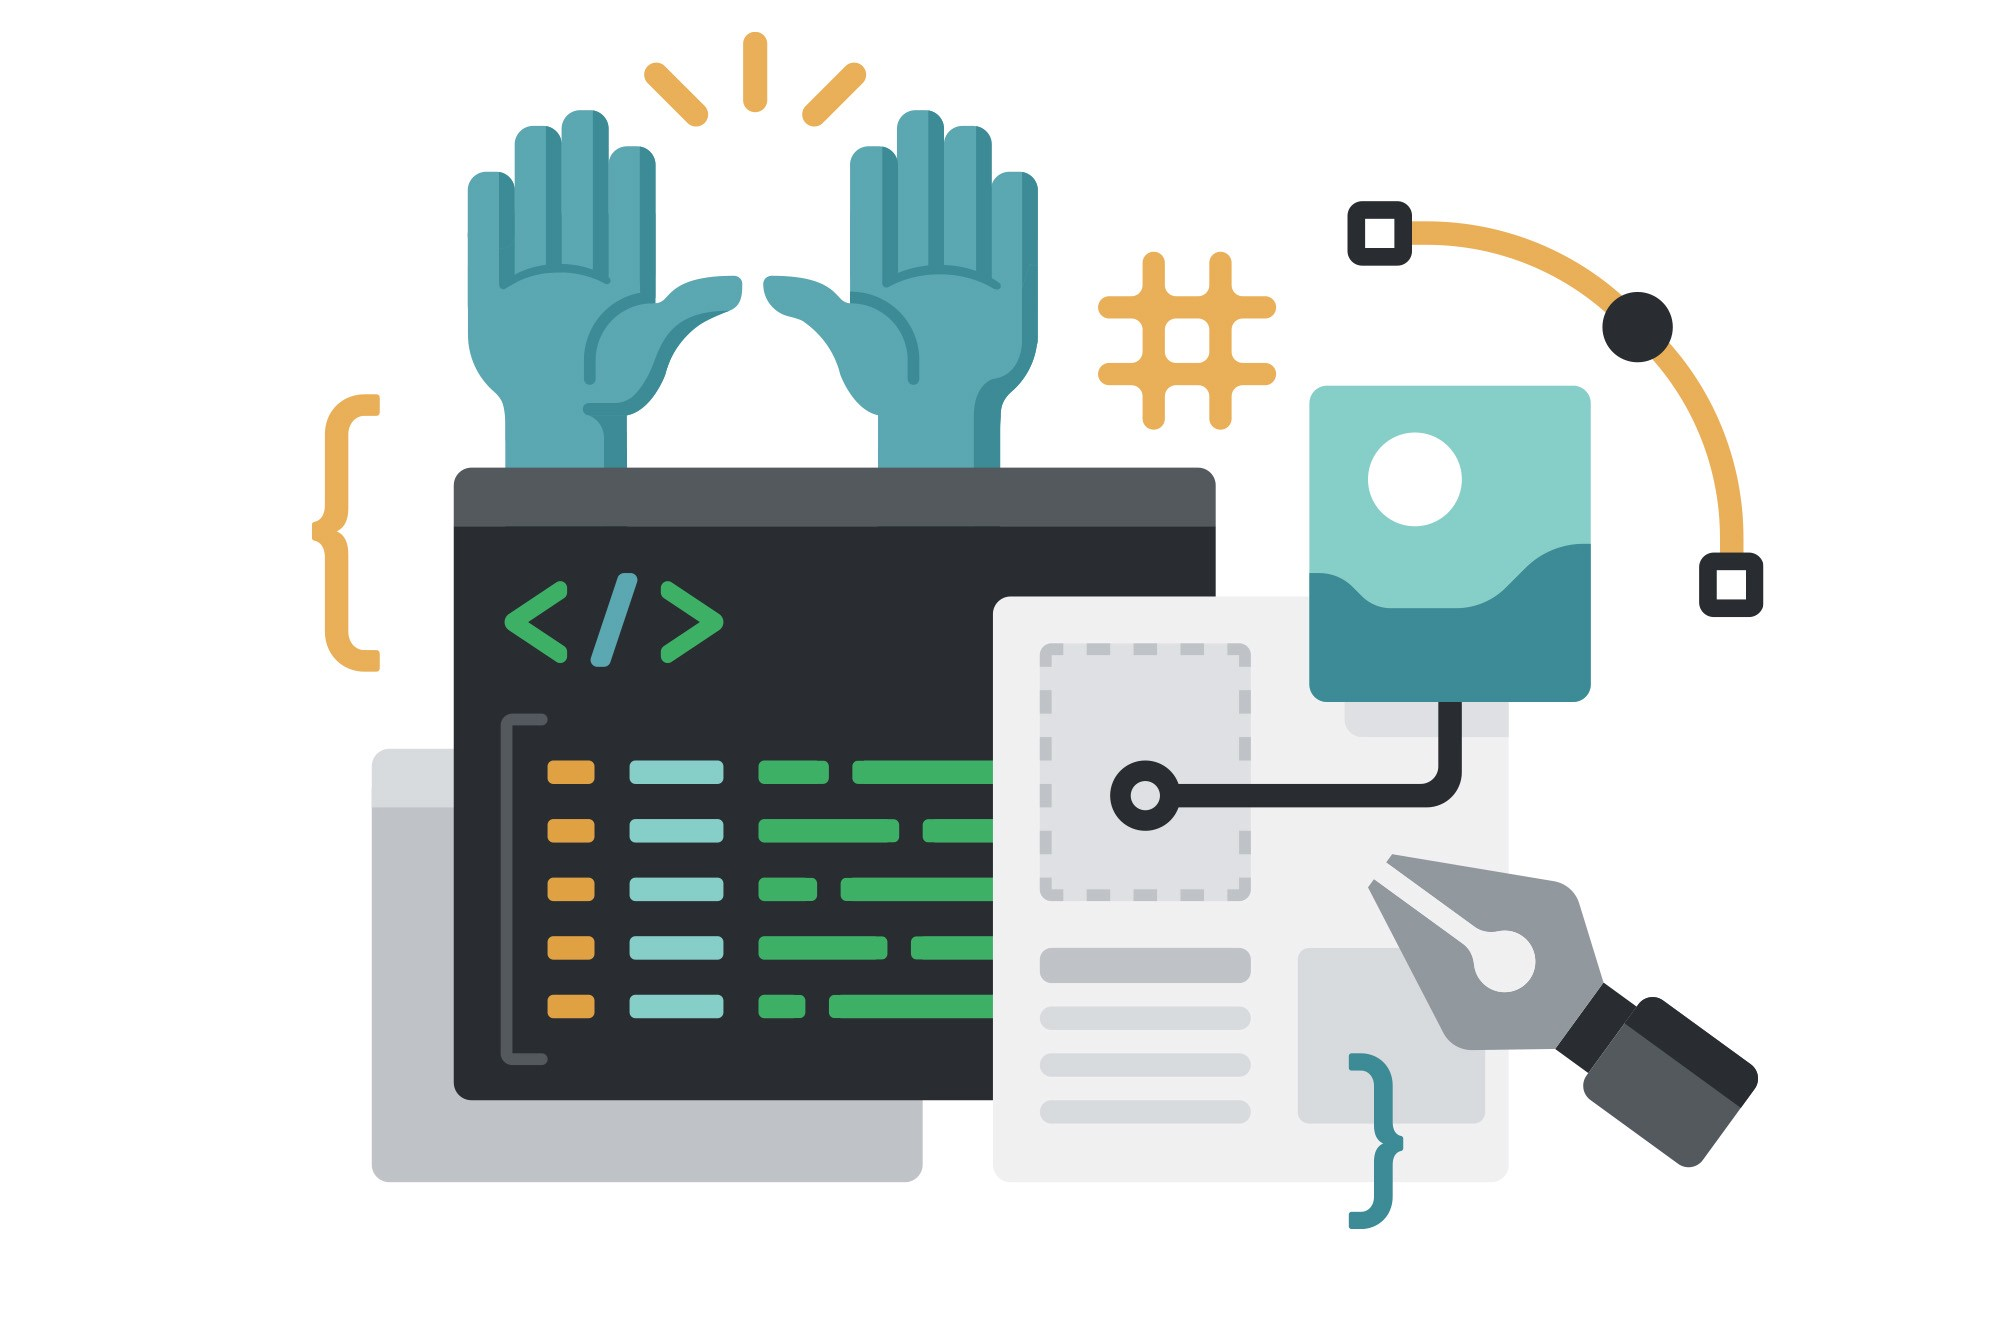 An illustration showing a pair of raised hands, some markdown symbols, and code brackets against a terminal screen.